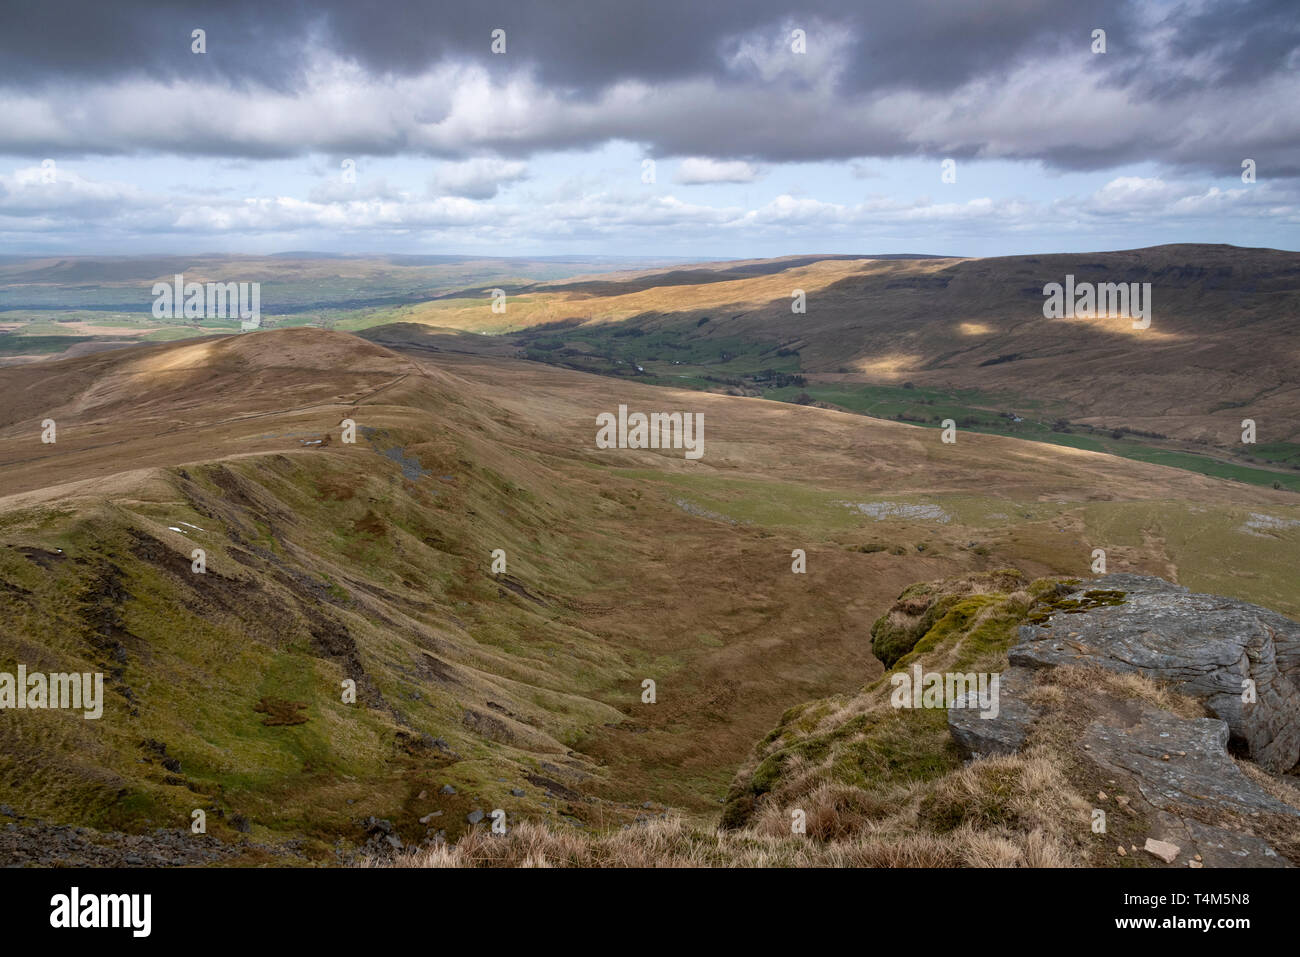 View across the Eden valley from the summit of Wild Boar Fell, Mallerstang, Cumbria - Stock Image